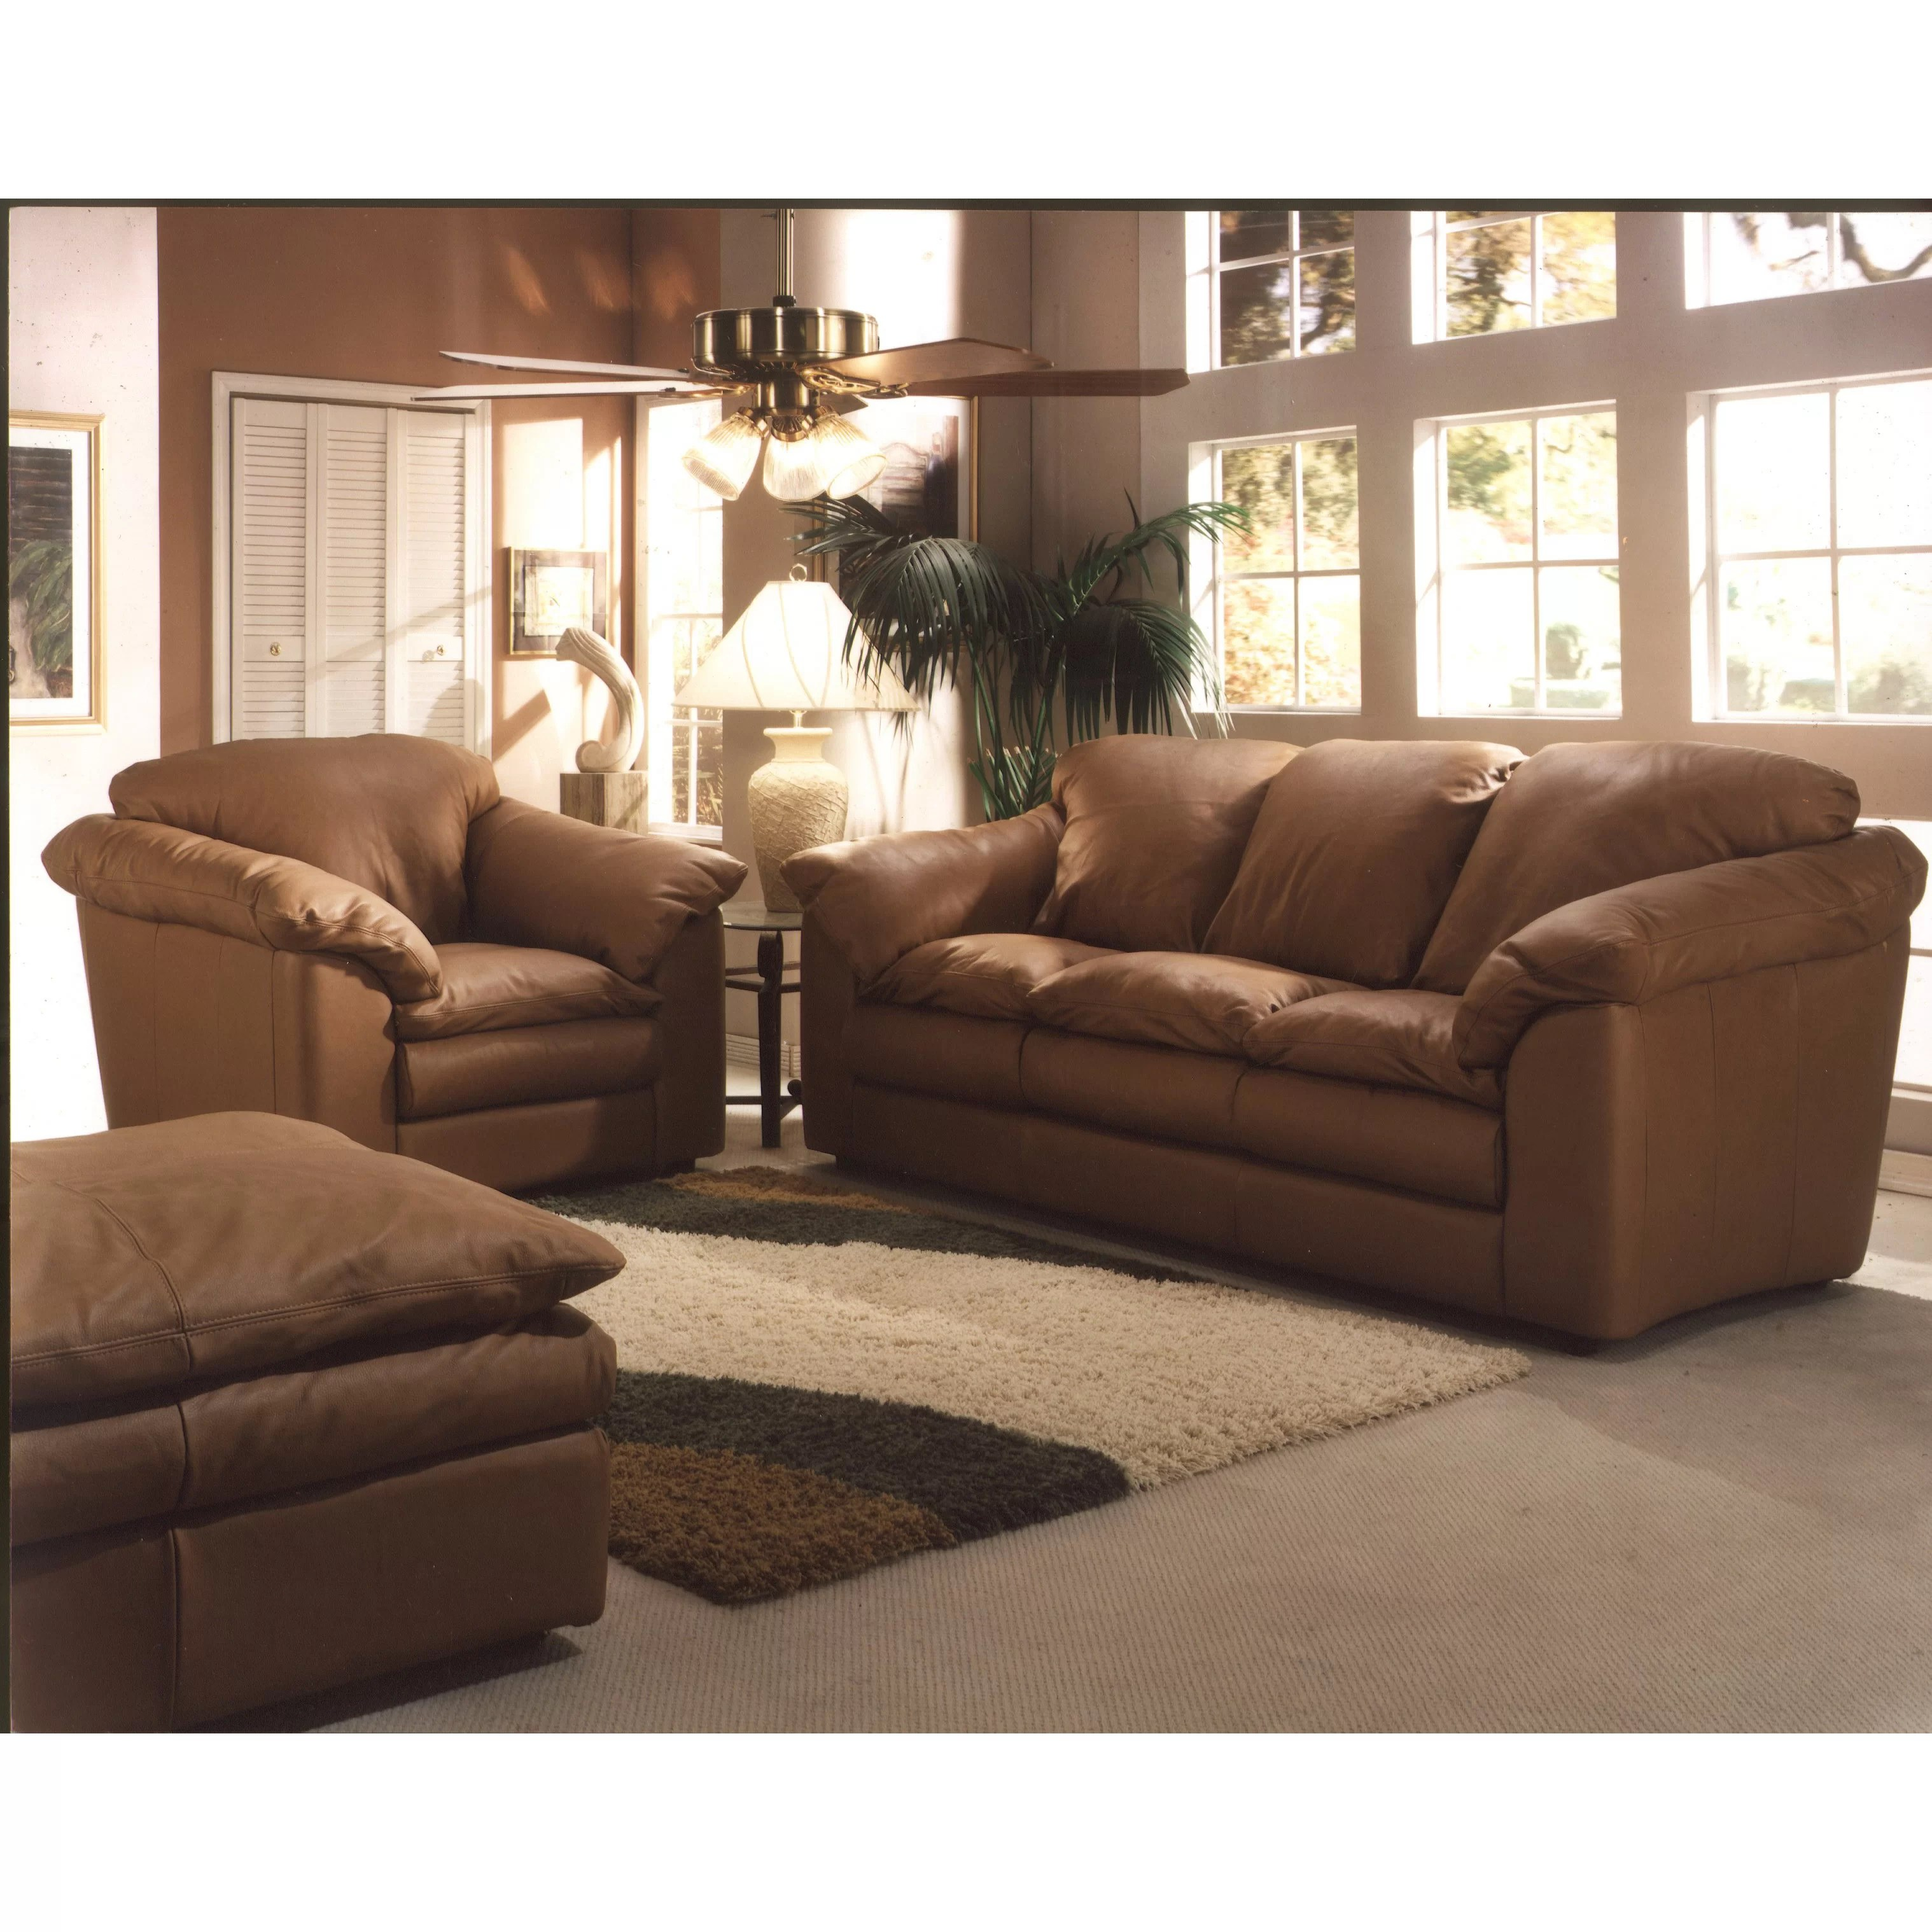 Leather Living Room Chair Omnia Leather Oregon 3 Seat Leather Living Room Set